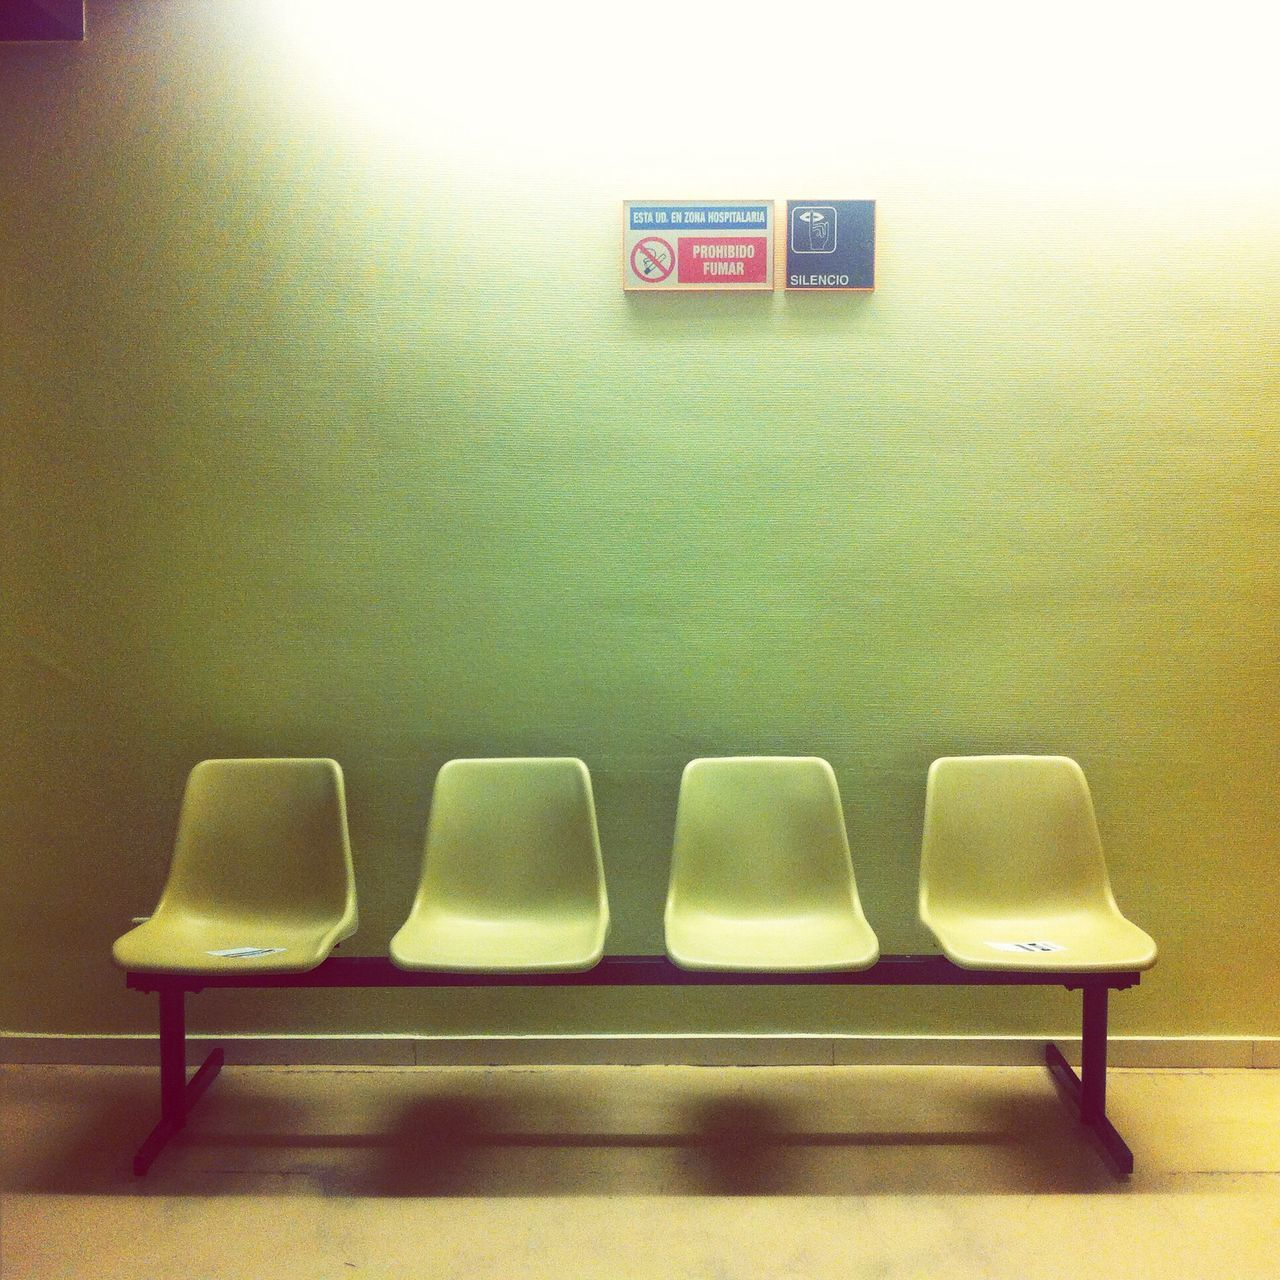 Empty seats in waiting area